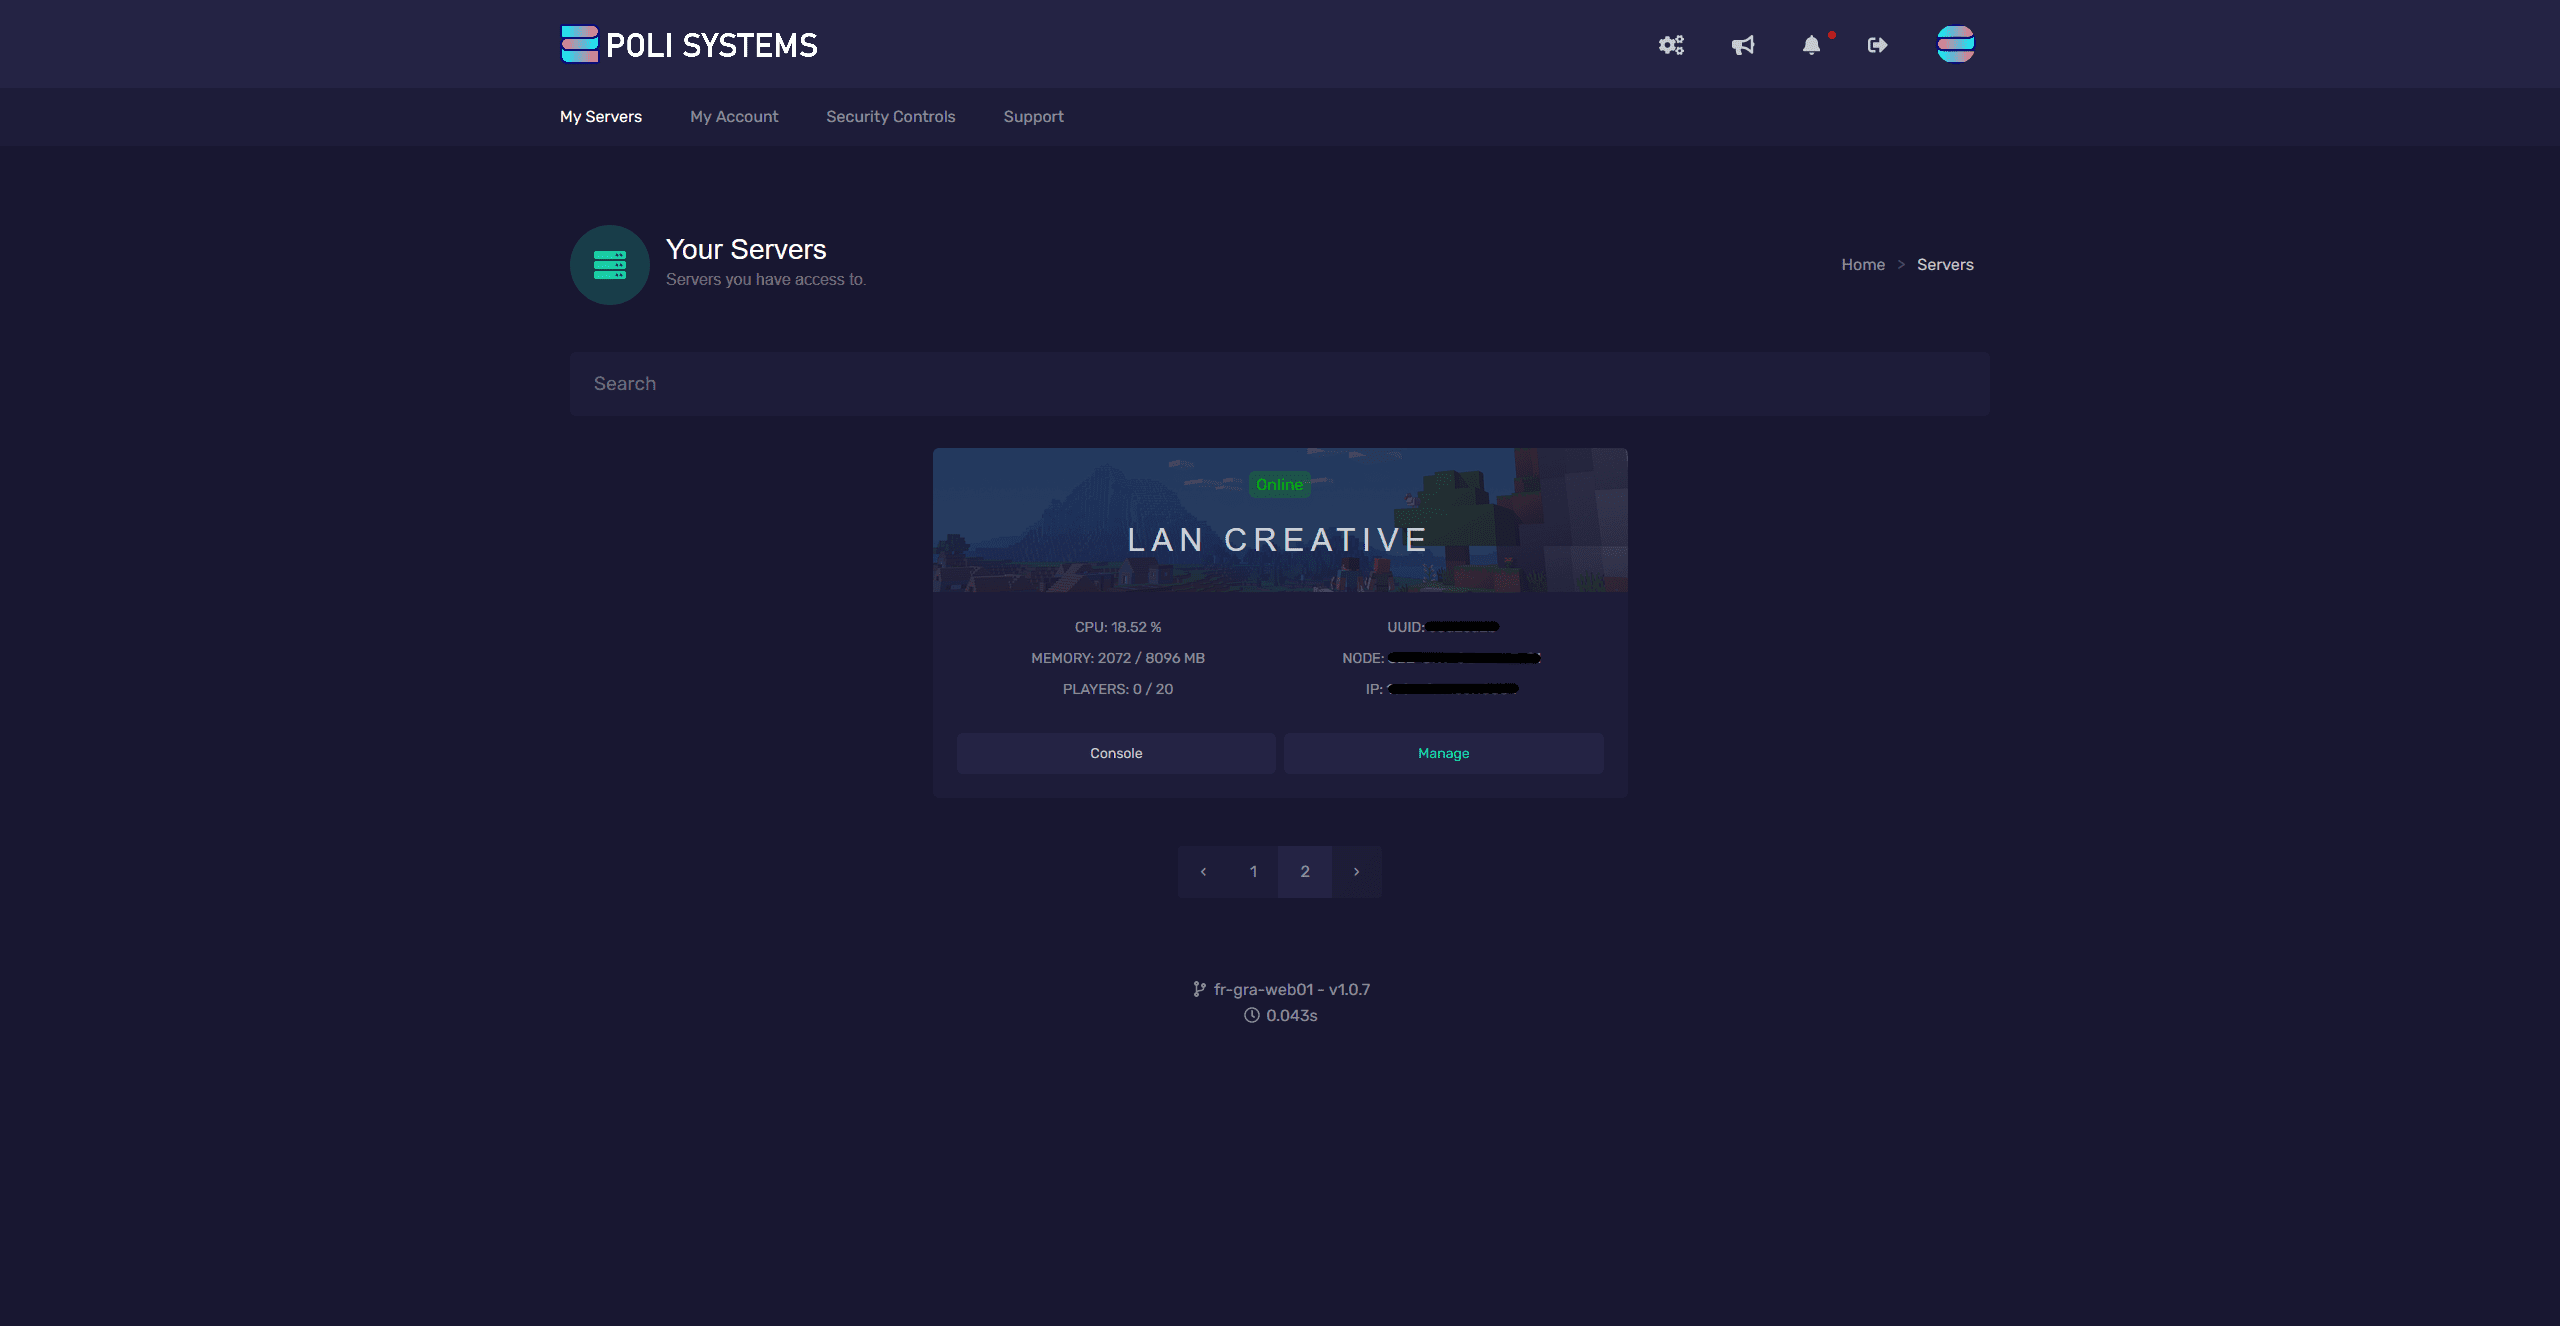 Main welcome screen where you can manage multiple servers